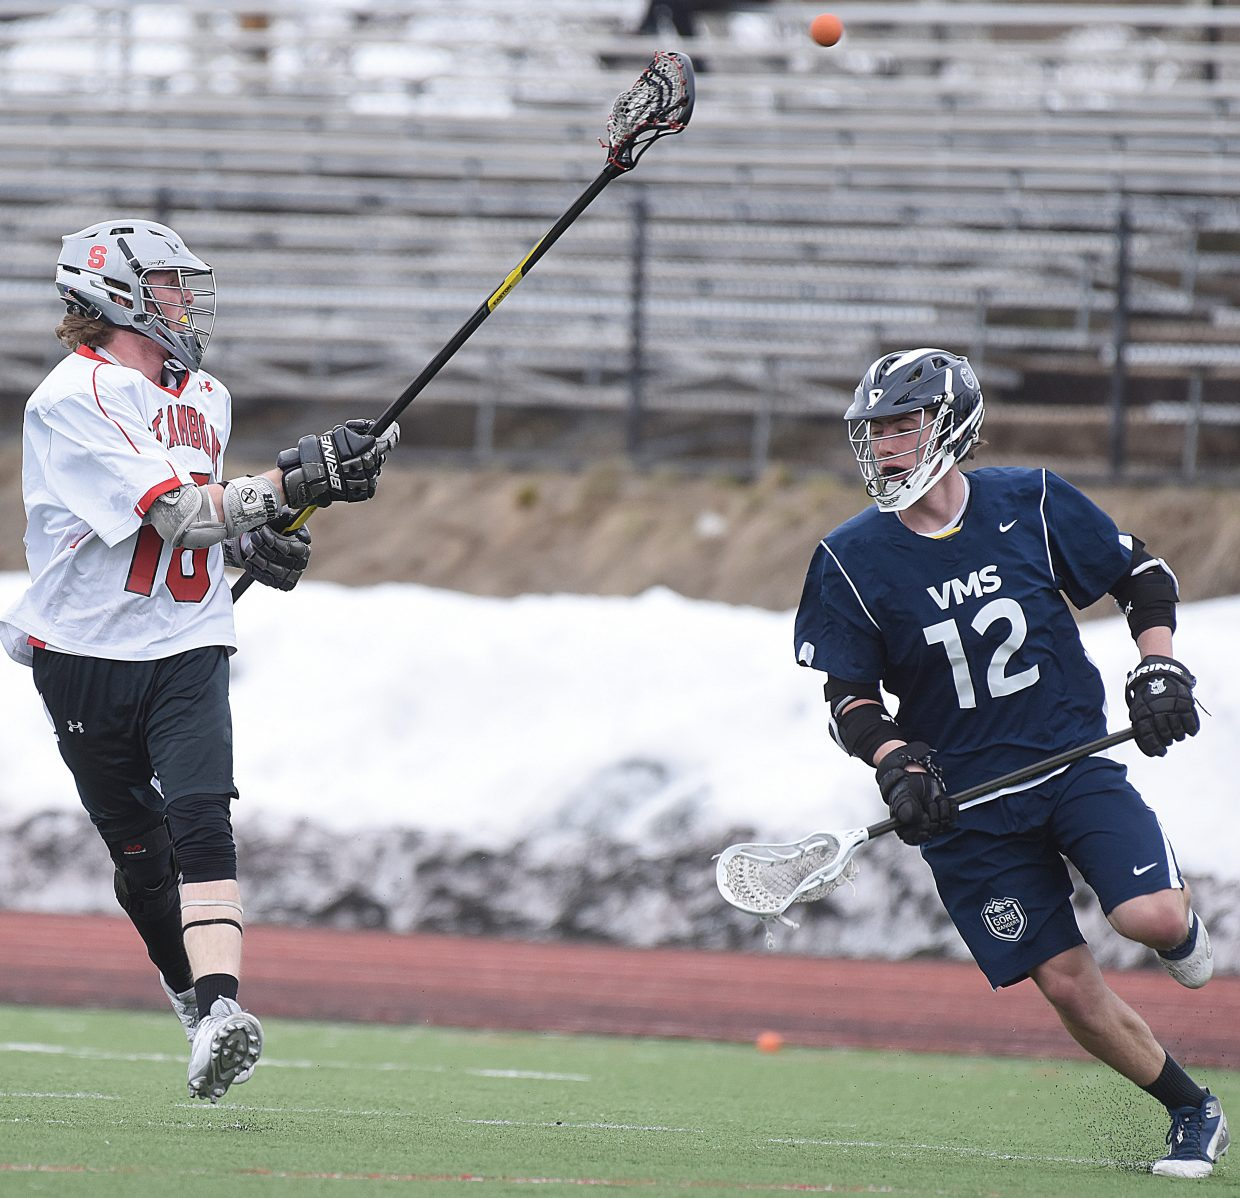 Defenseman Jordan Gorr passes the ball to a teammate as the Steamboat Springs Sailors hosted the Vail Mountain Gore Rangers at Gardner Field earlier this season.